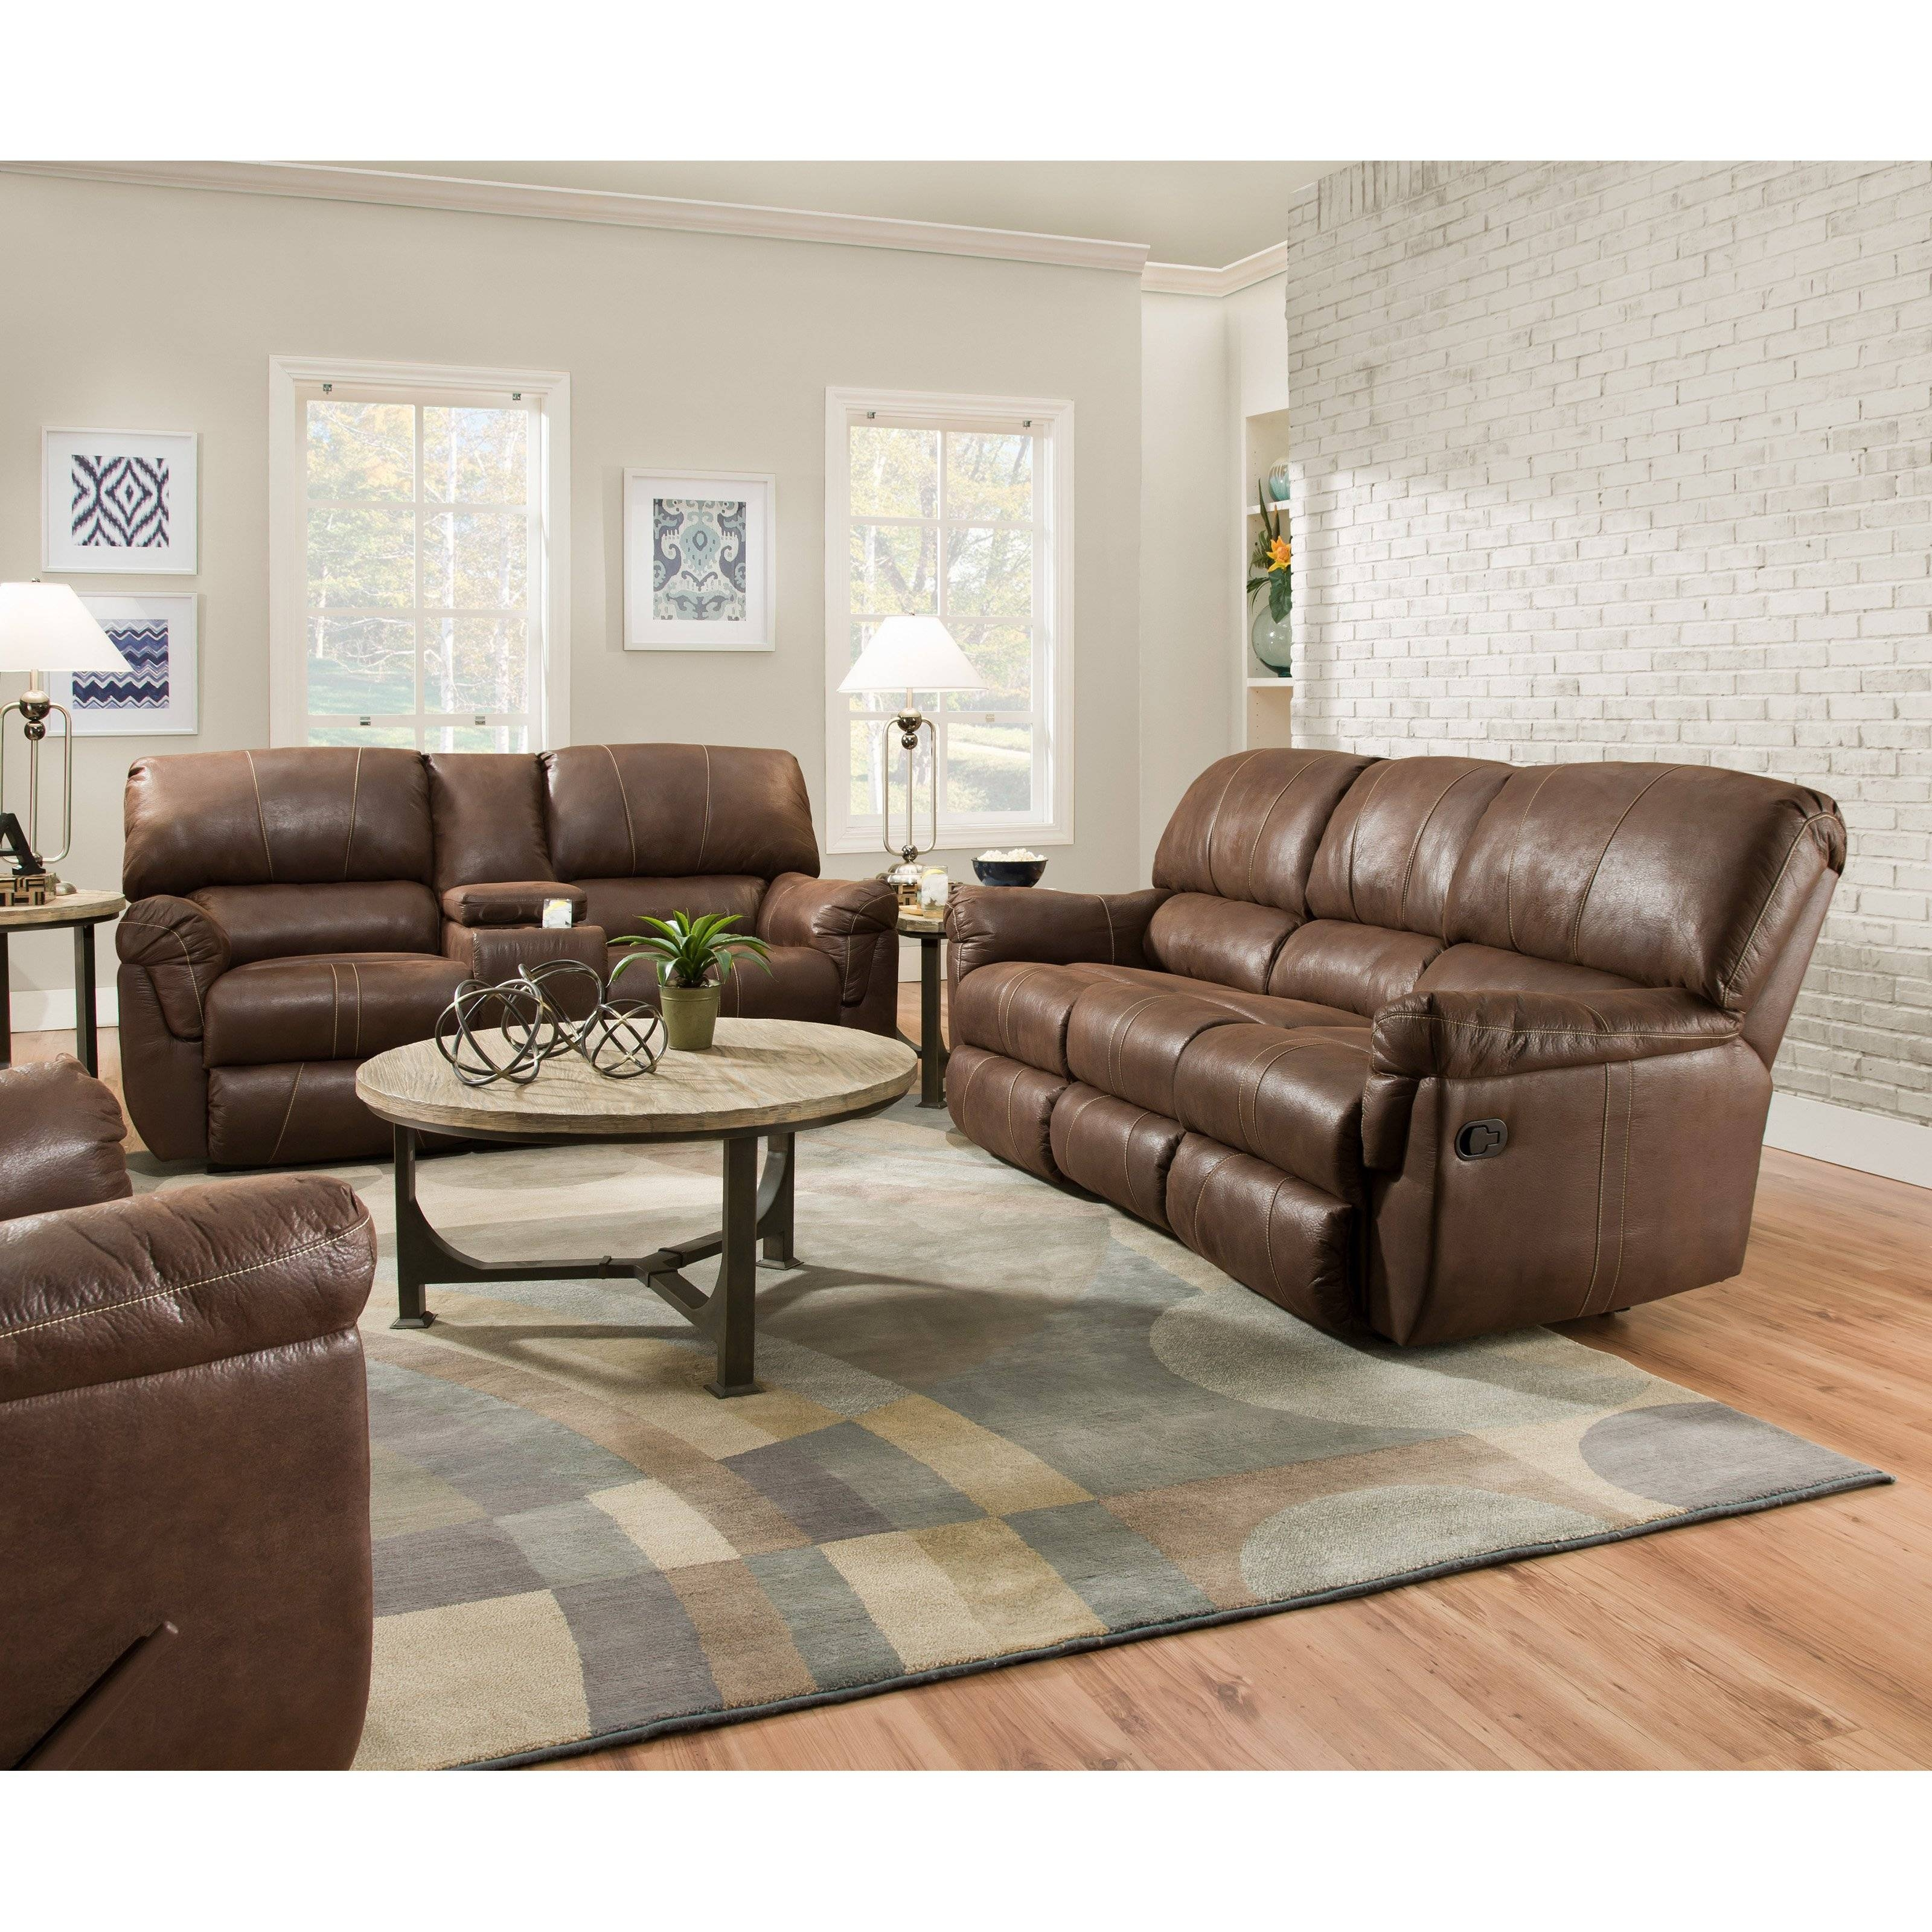 Furniture: Simmons Couch | Cheap Leather Couches | Big Lots with Big Lots Simmons Furniture (Image 6 of 15)